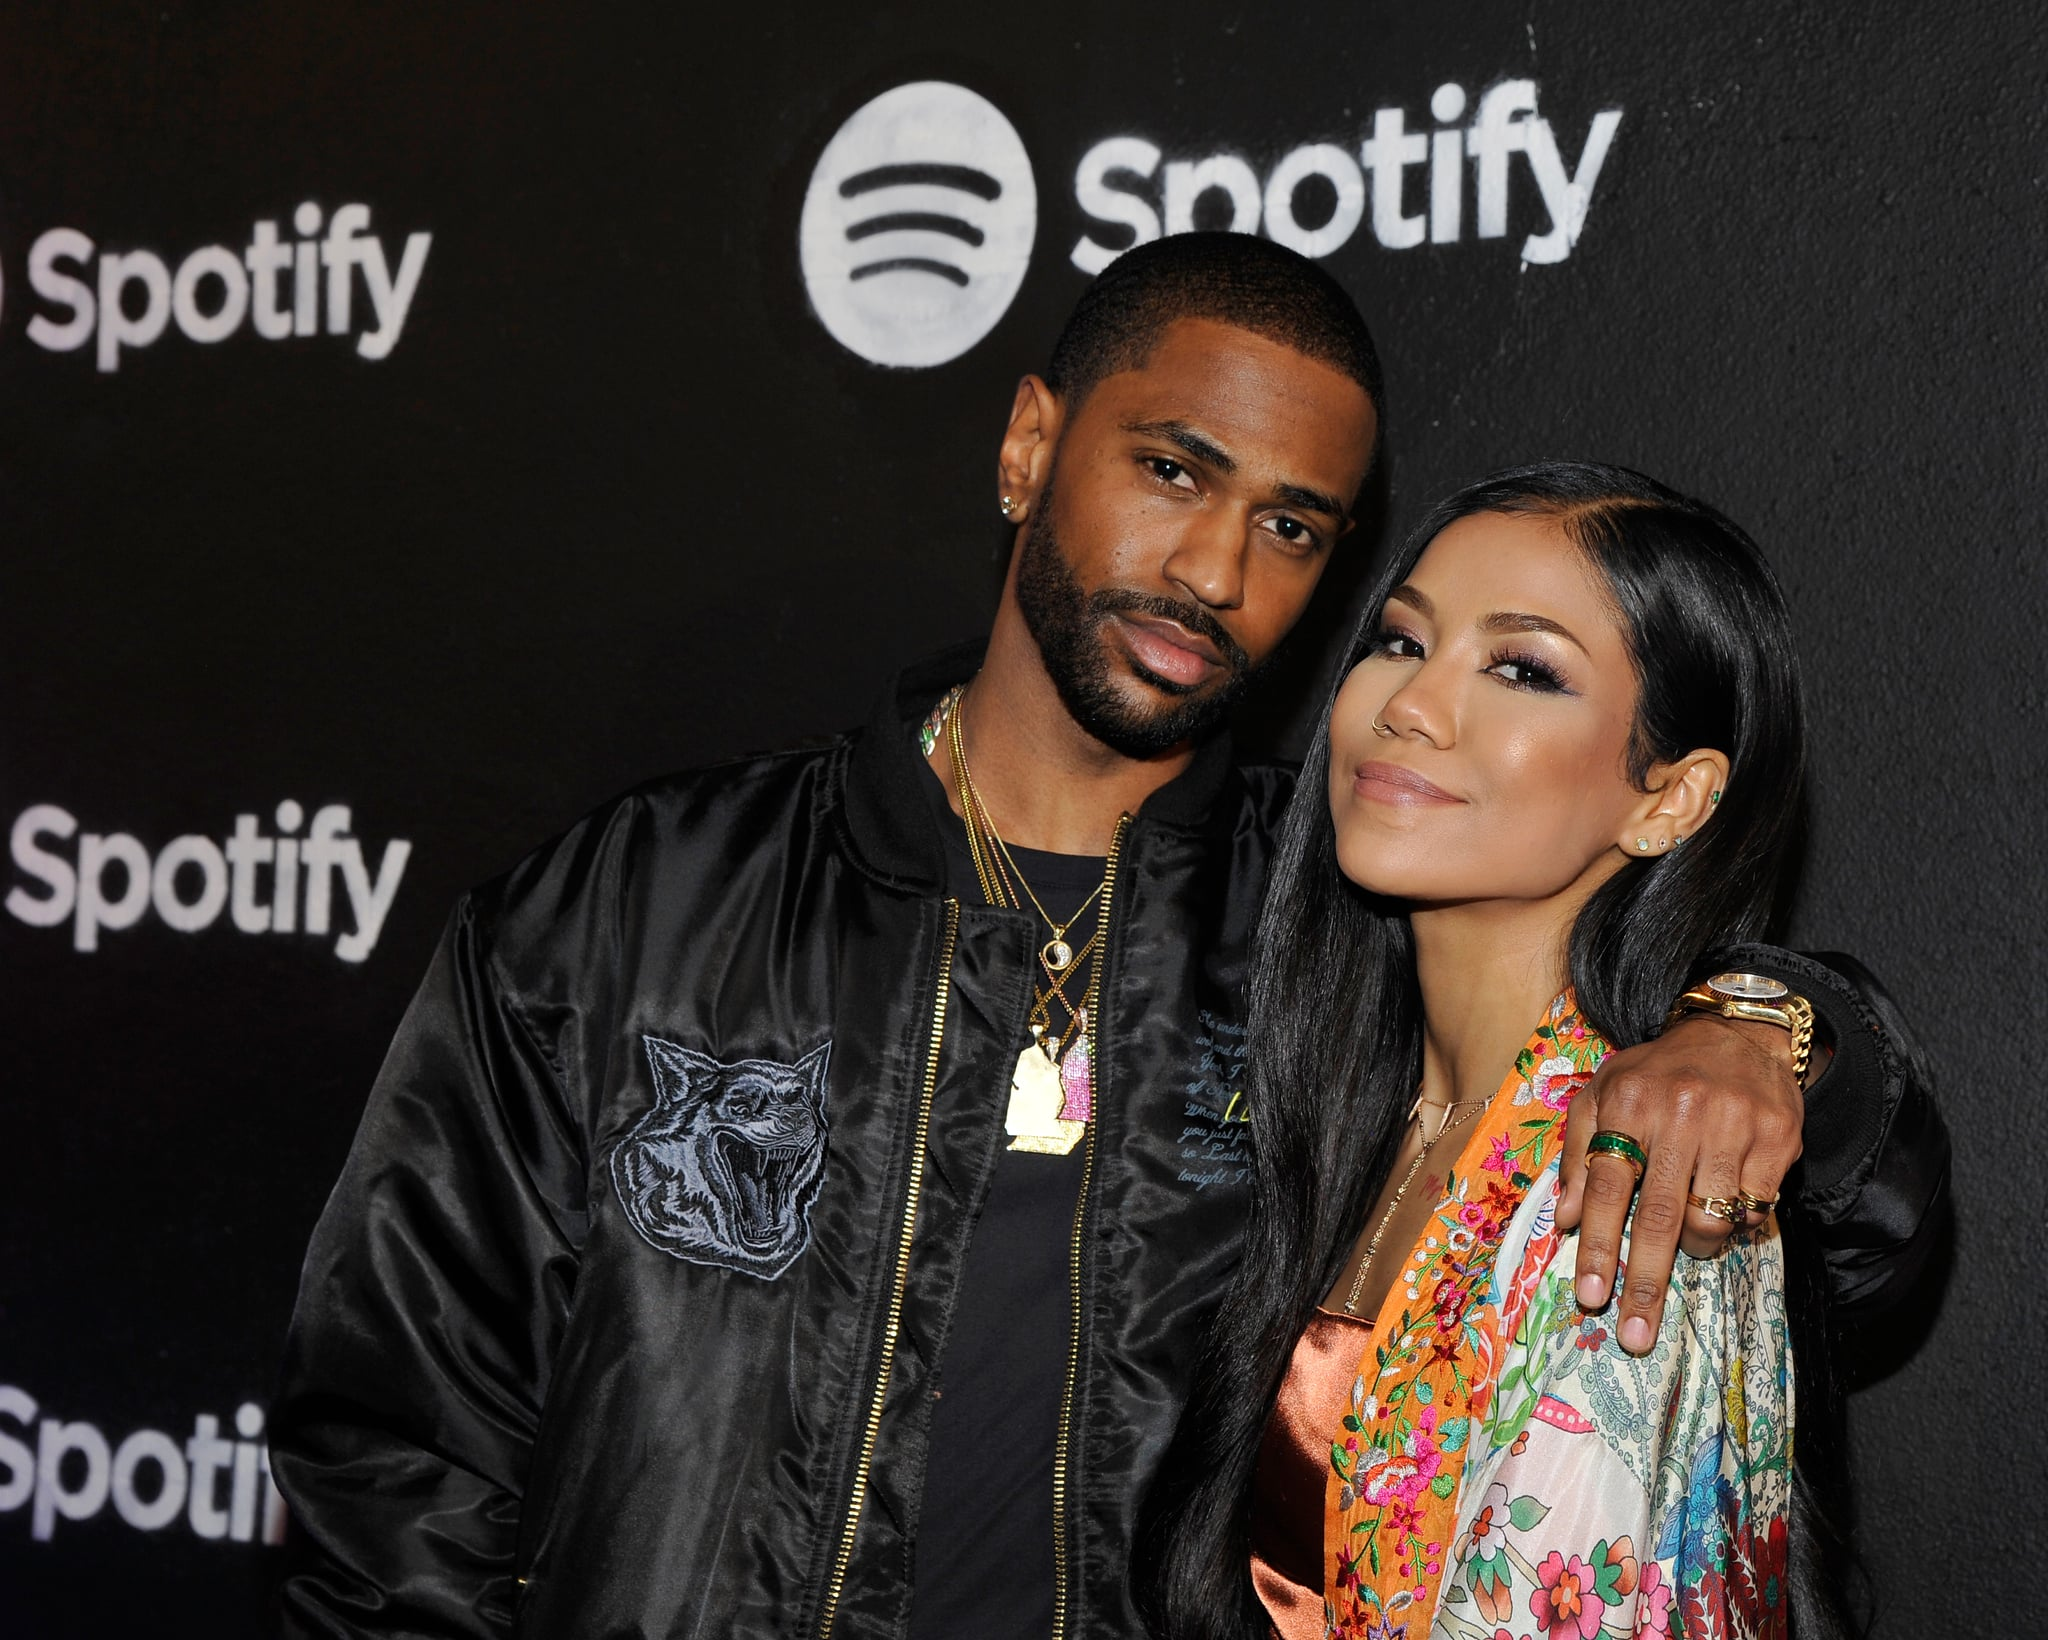 LOS ANGELES, CA - FEBRUARY 09:  Rapper Big Sean and singer Jhene Aiko attend the Spotify Best New Artist Nominees celebration at Belasco Theatre on 9, 2017 in Los Angeles, California.  (Photo by John Sciulli/Getty Images for Spotify)